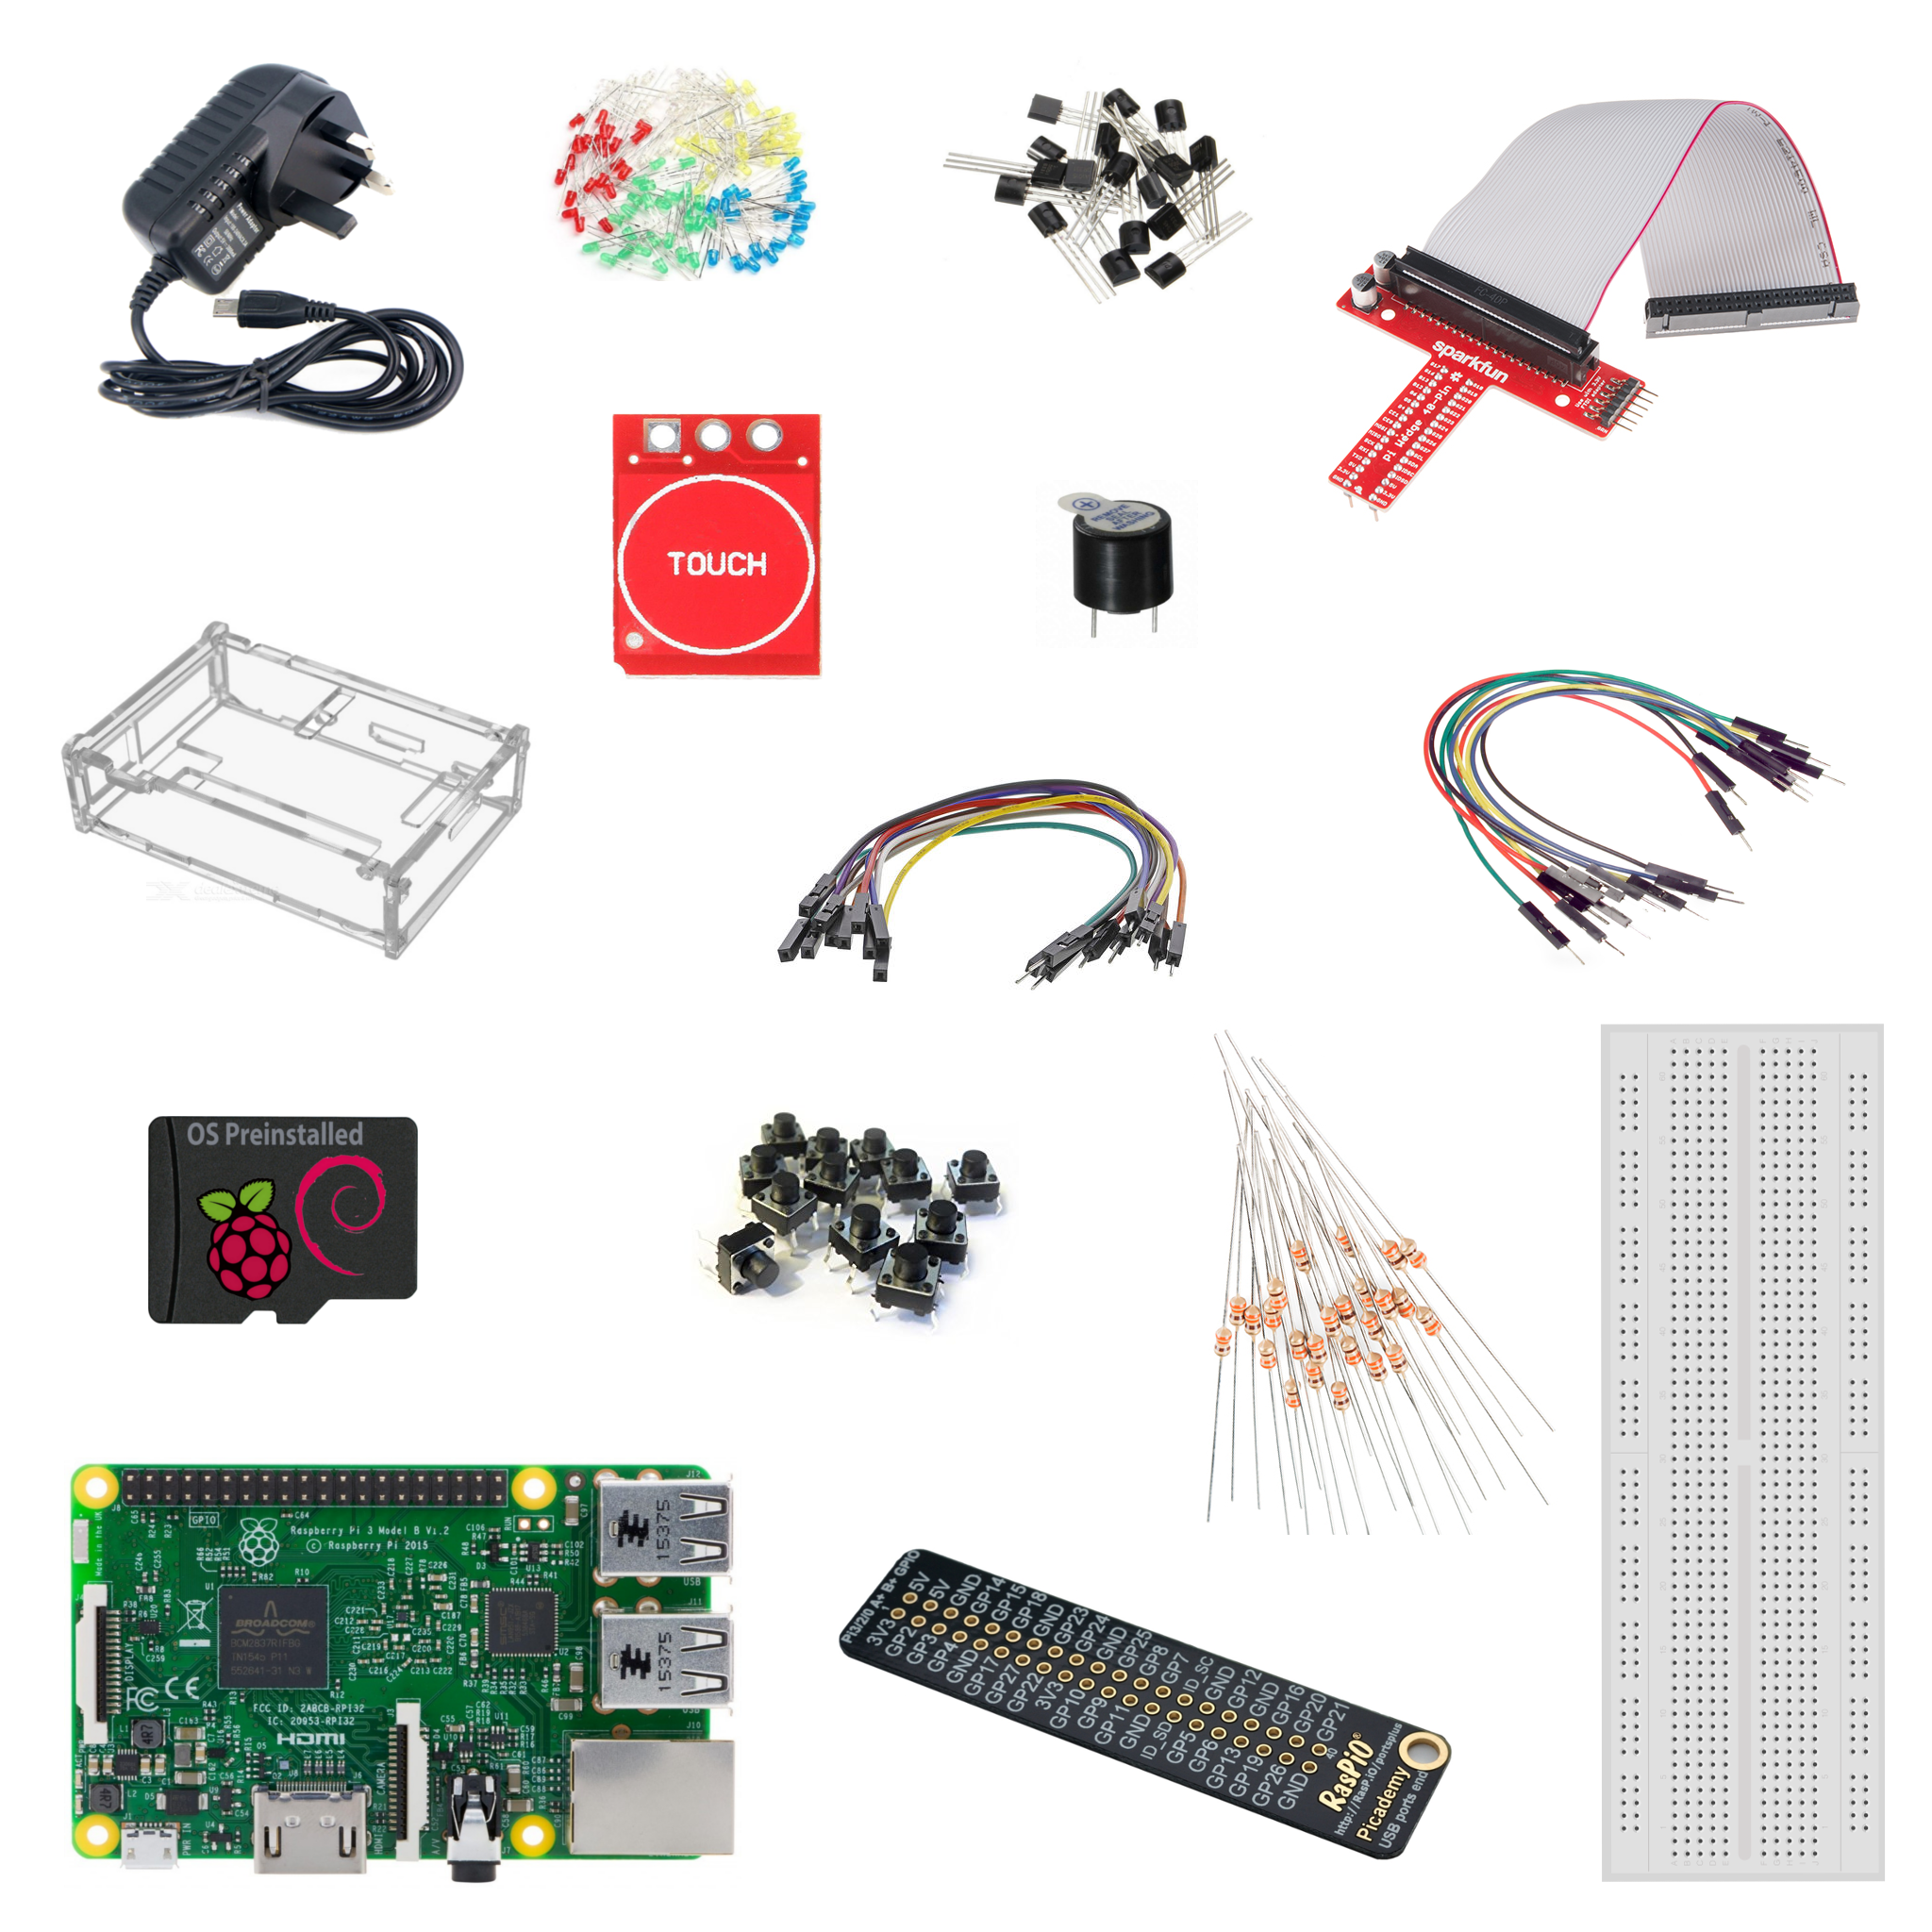 Getting Started With Raspberry Pi And Electronics Learn Edwin Circuit Connected We Can Go Ahead Add Some Code For Our Starter Kit Tutorial Blog